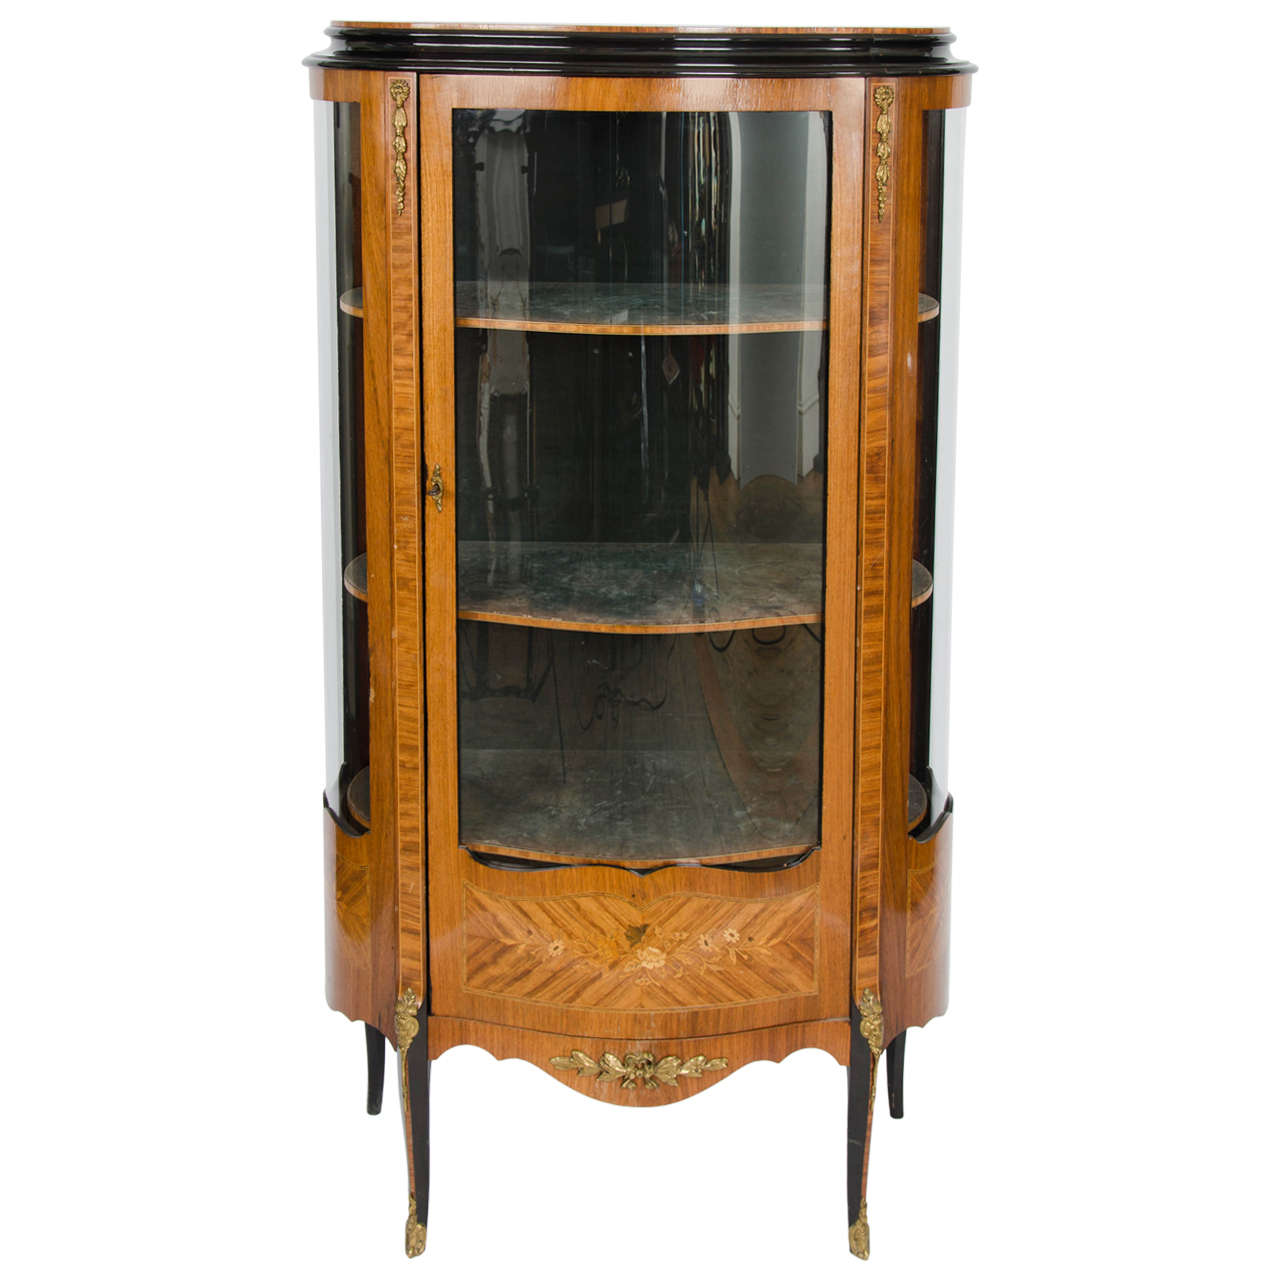 Vintage French Ormolu Vitrine Glass Display Cabinet At 1stdibs